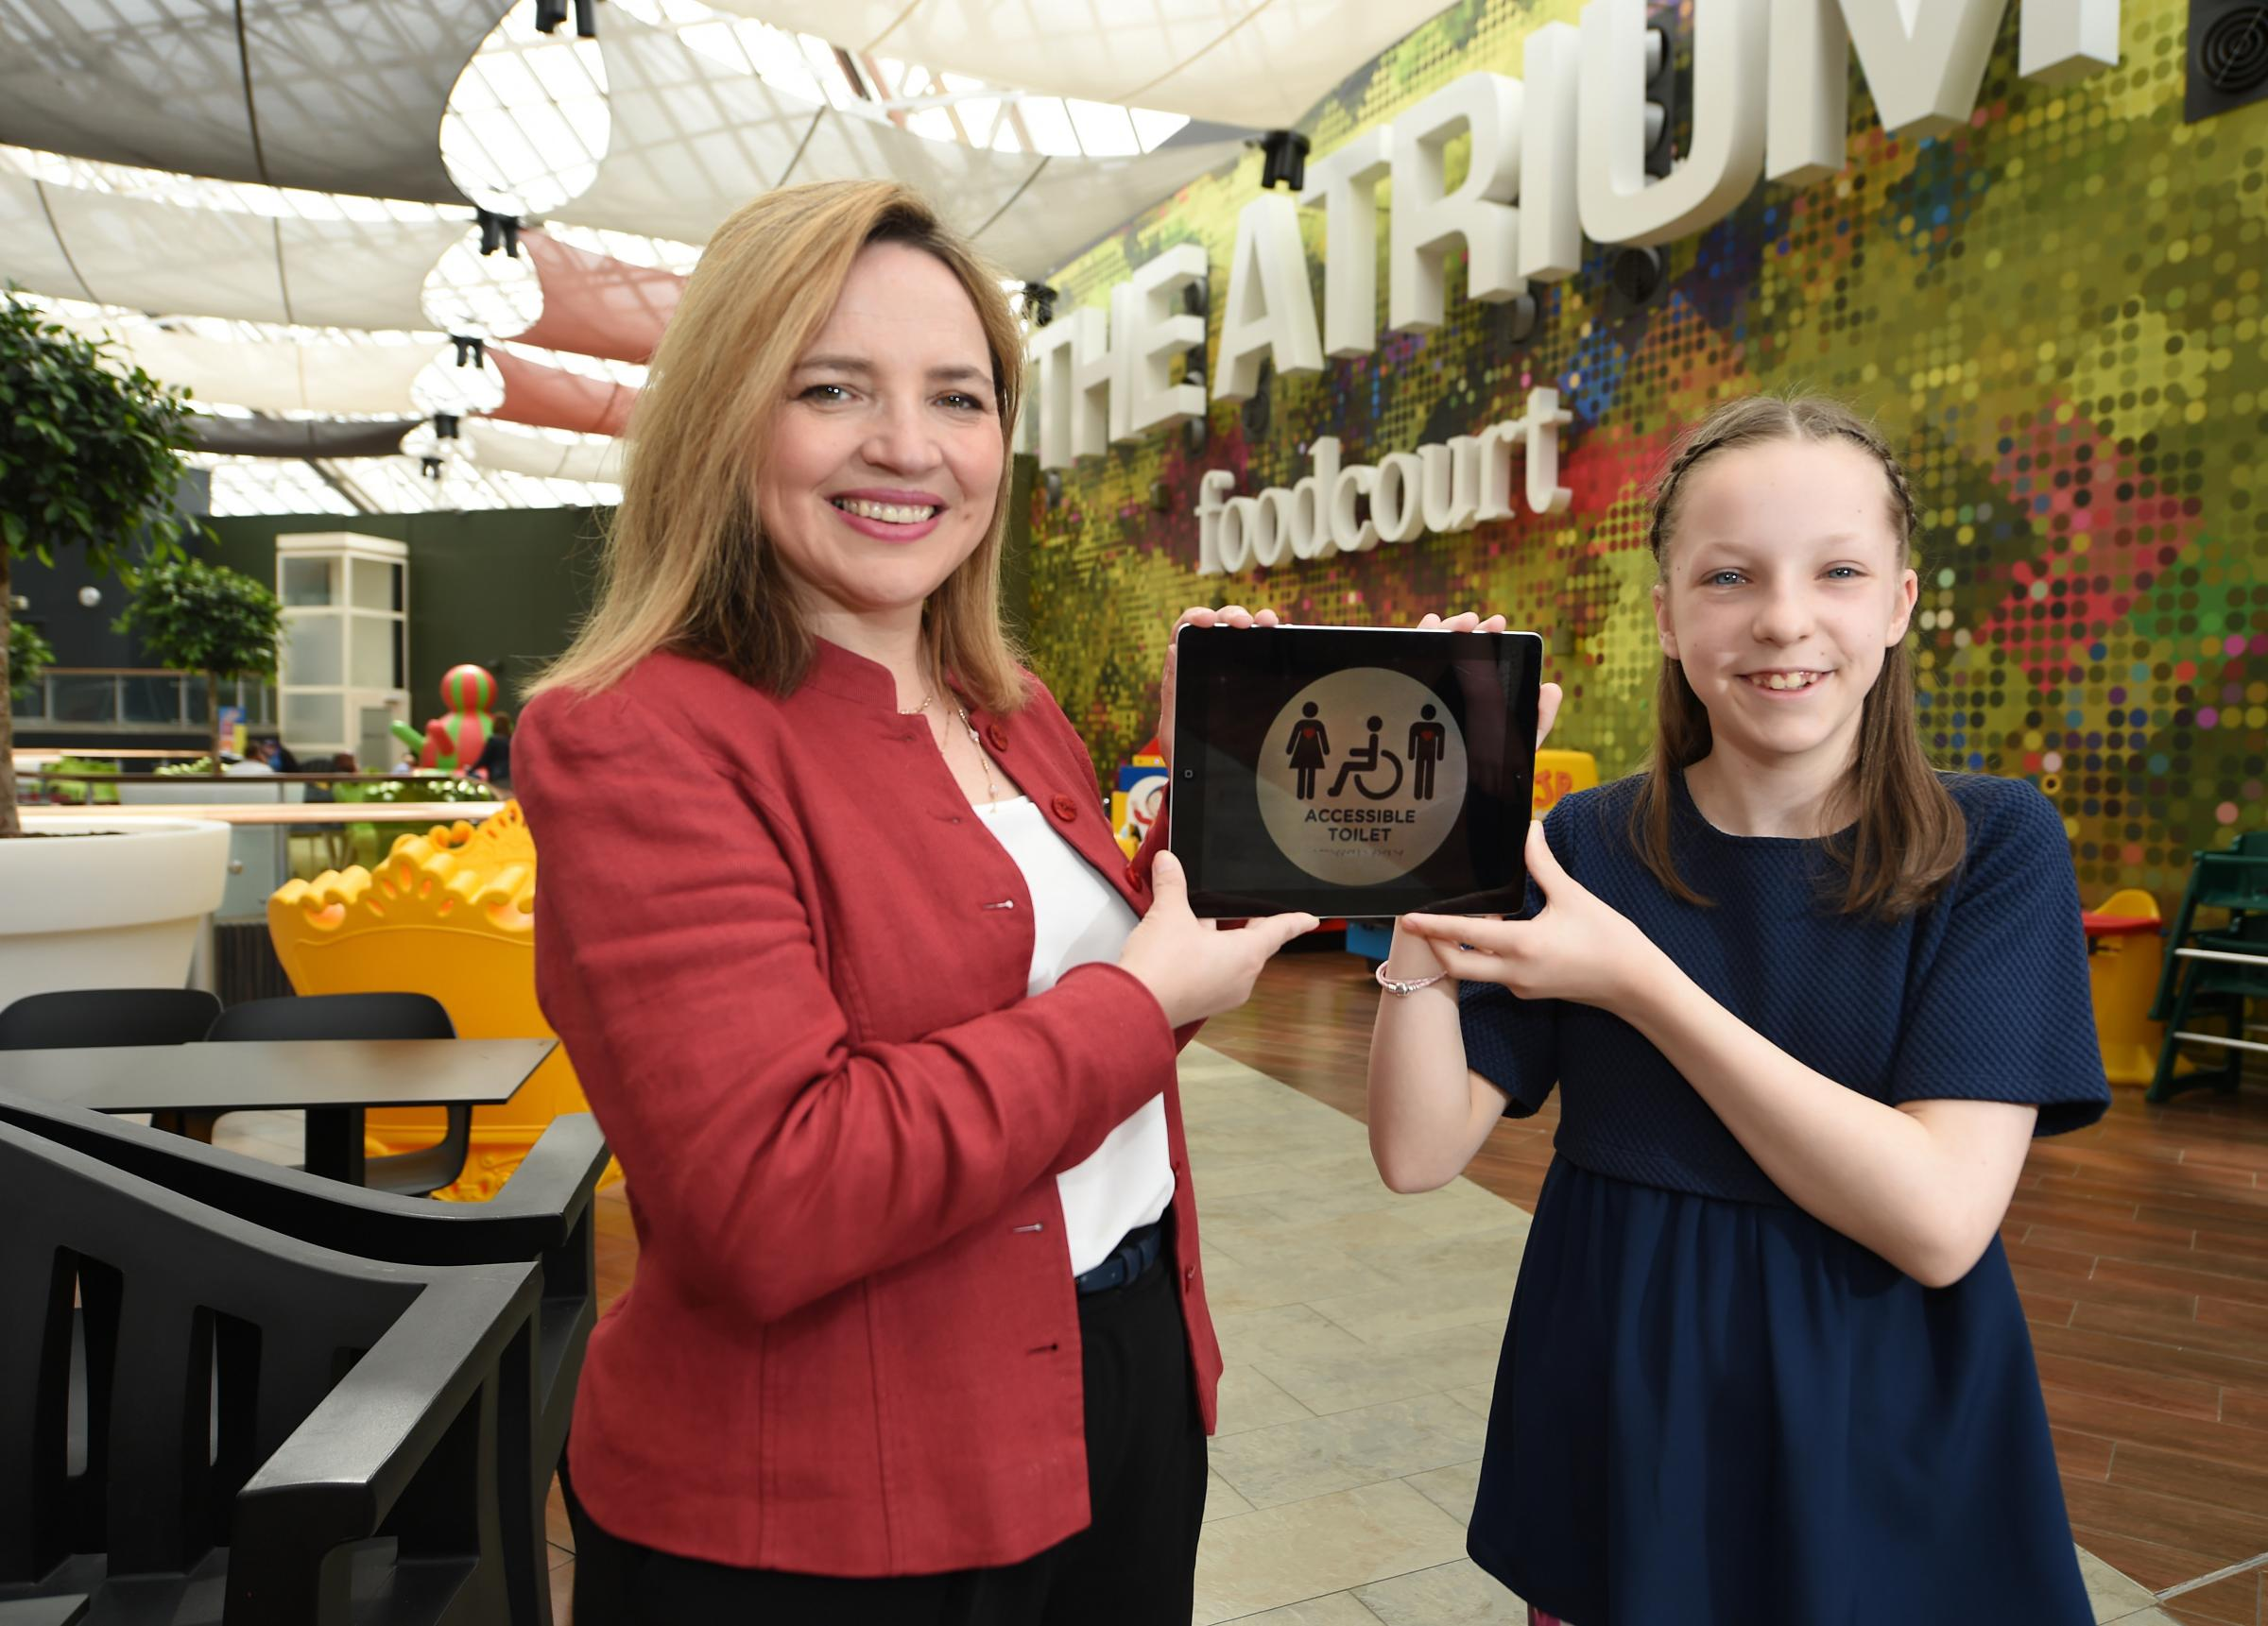 Anne Ledgerwood, general manager of St Enoch Centre, with 13-year-old Grace Warnock and a sign featuring her design